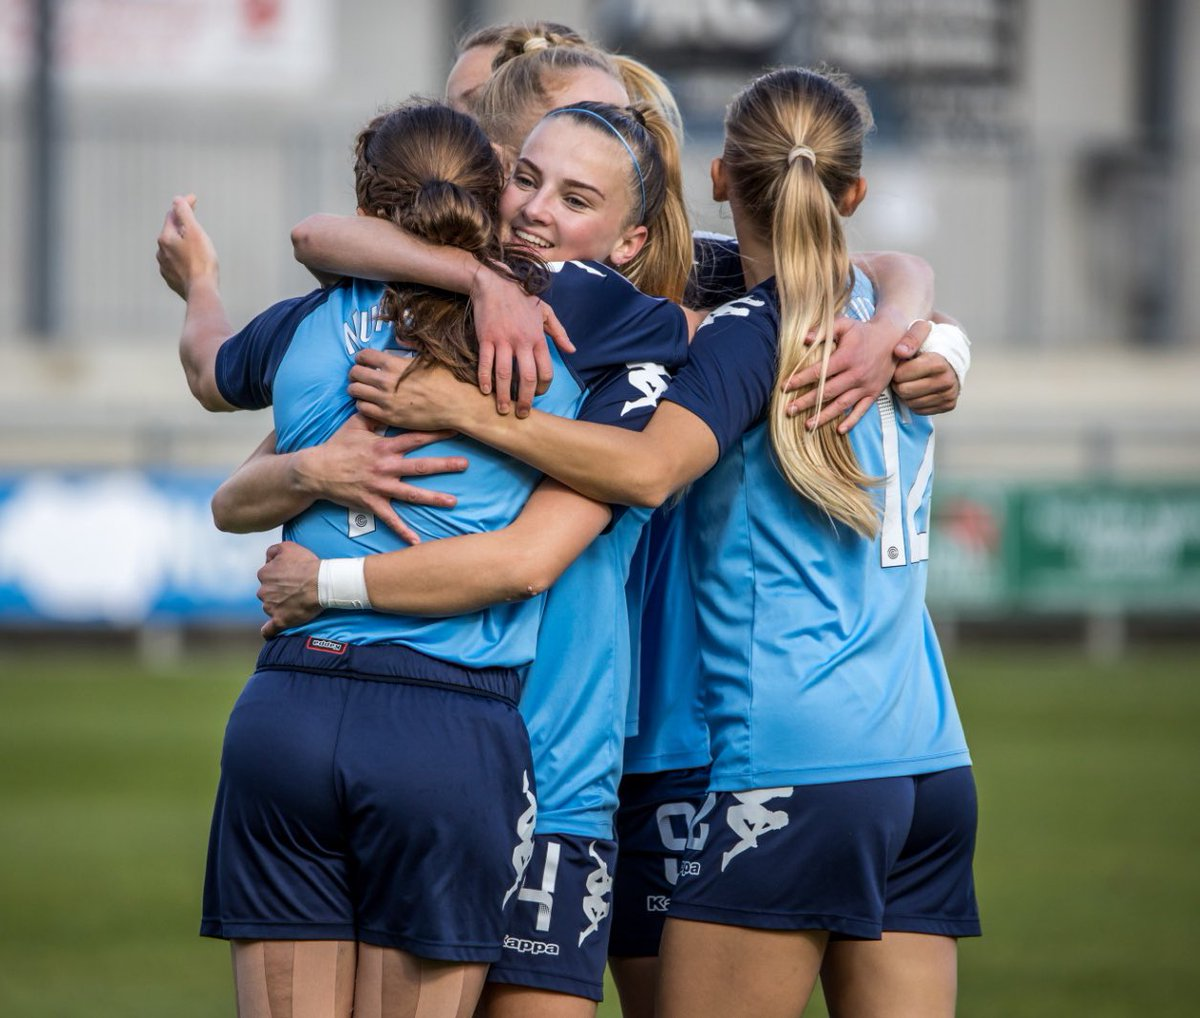 💙 TEAM 💙 Great performance all around from #ThePride   Check out the full match report here 👉  https://t.co/ONUOwdh8wA from yesterday's win against @LondonBees 📲 (Link also available in our bio) https://t.co/QMDkF1w9rl